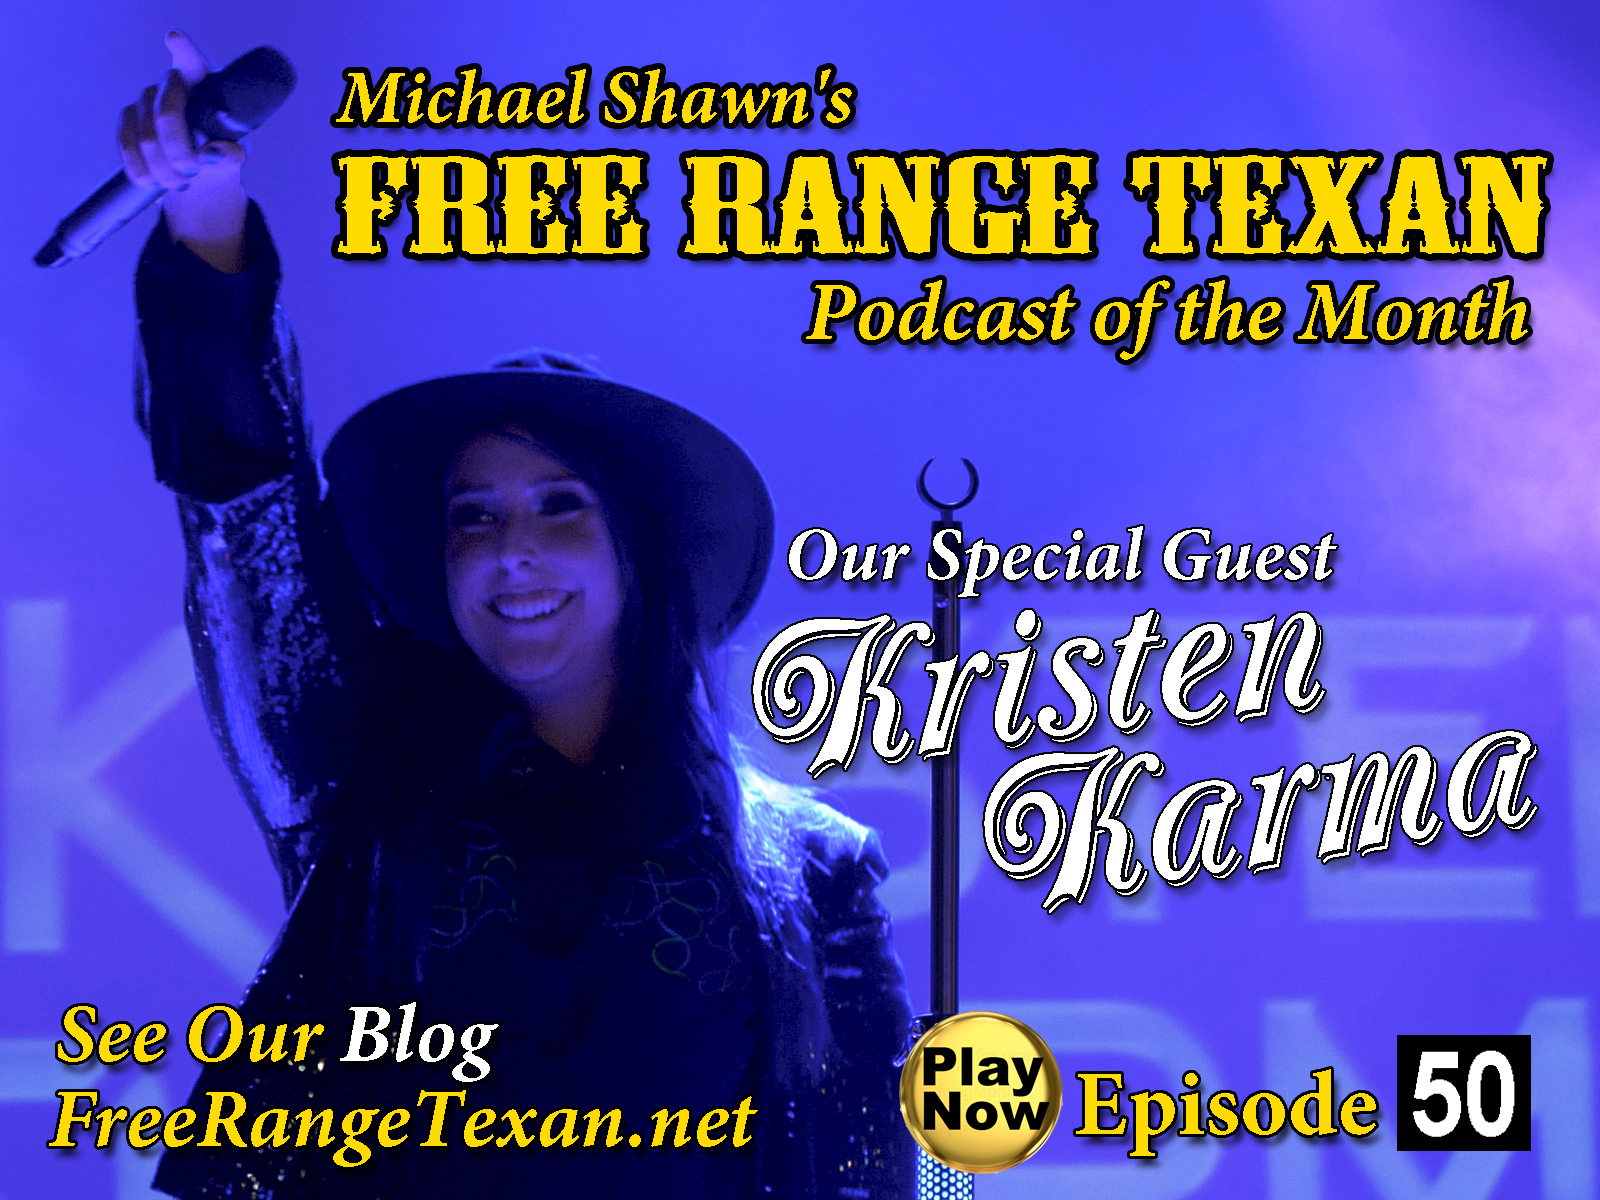 Free Range Texan Podcast Episode 50